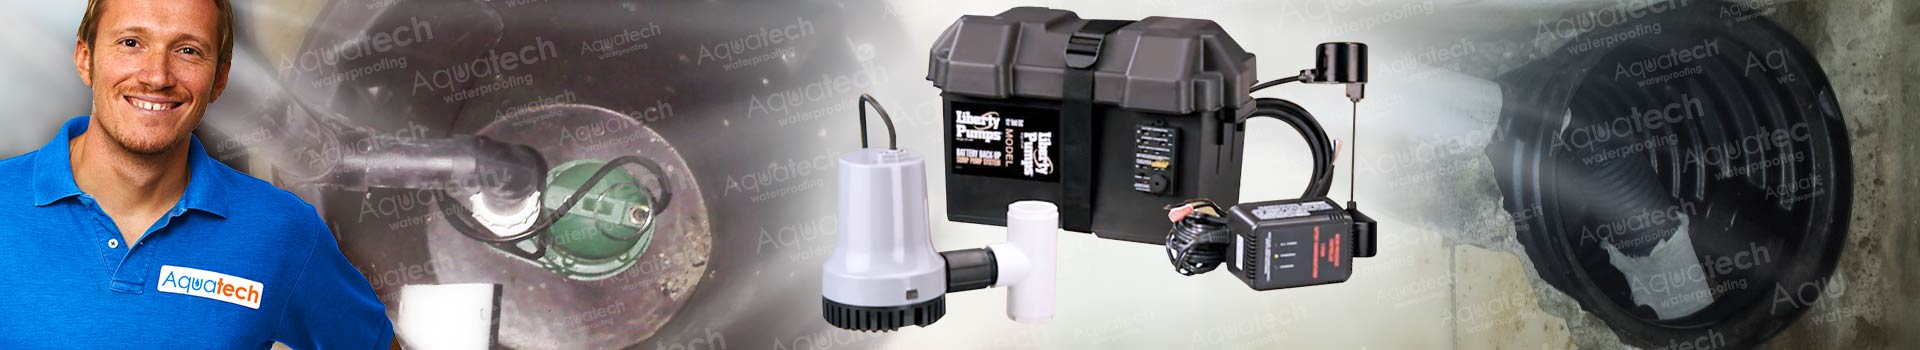 aquatech-waterproofing-sump-pump-back-up-battery